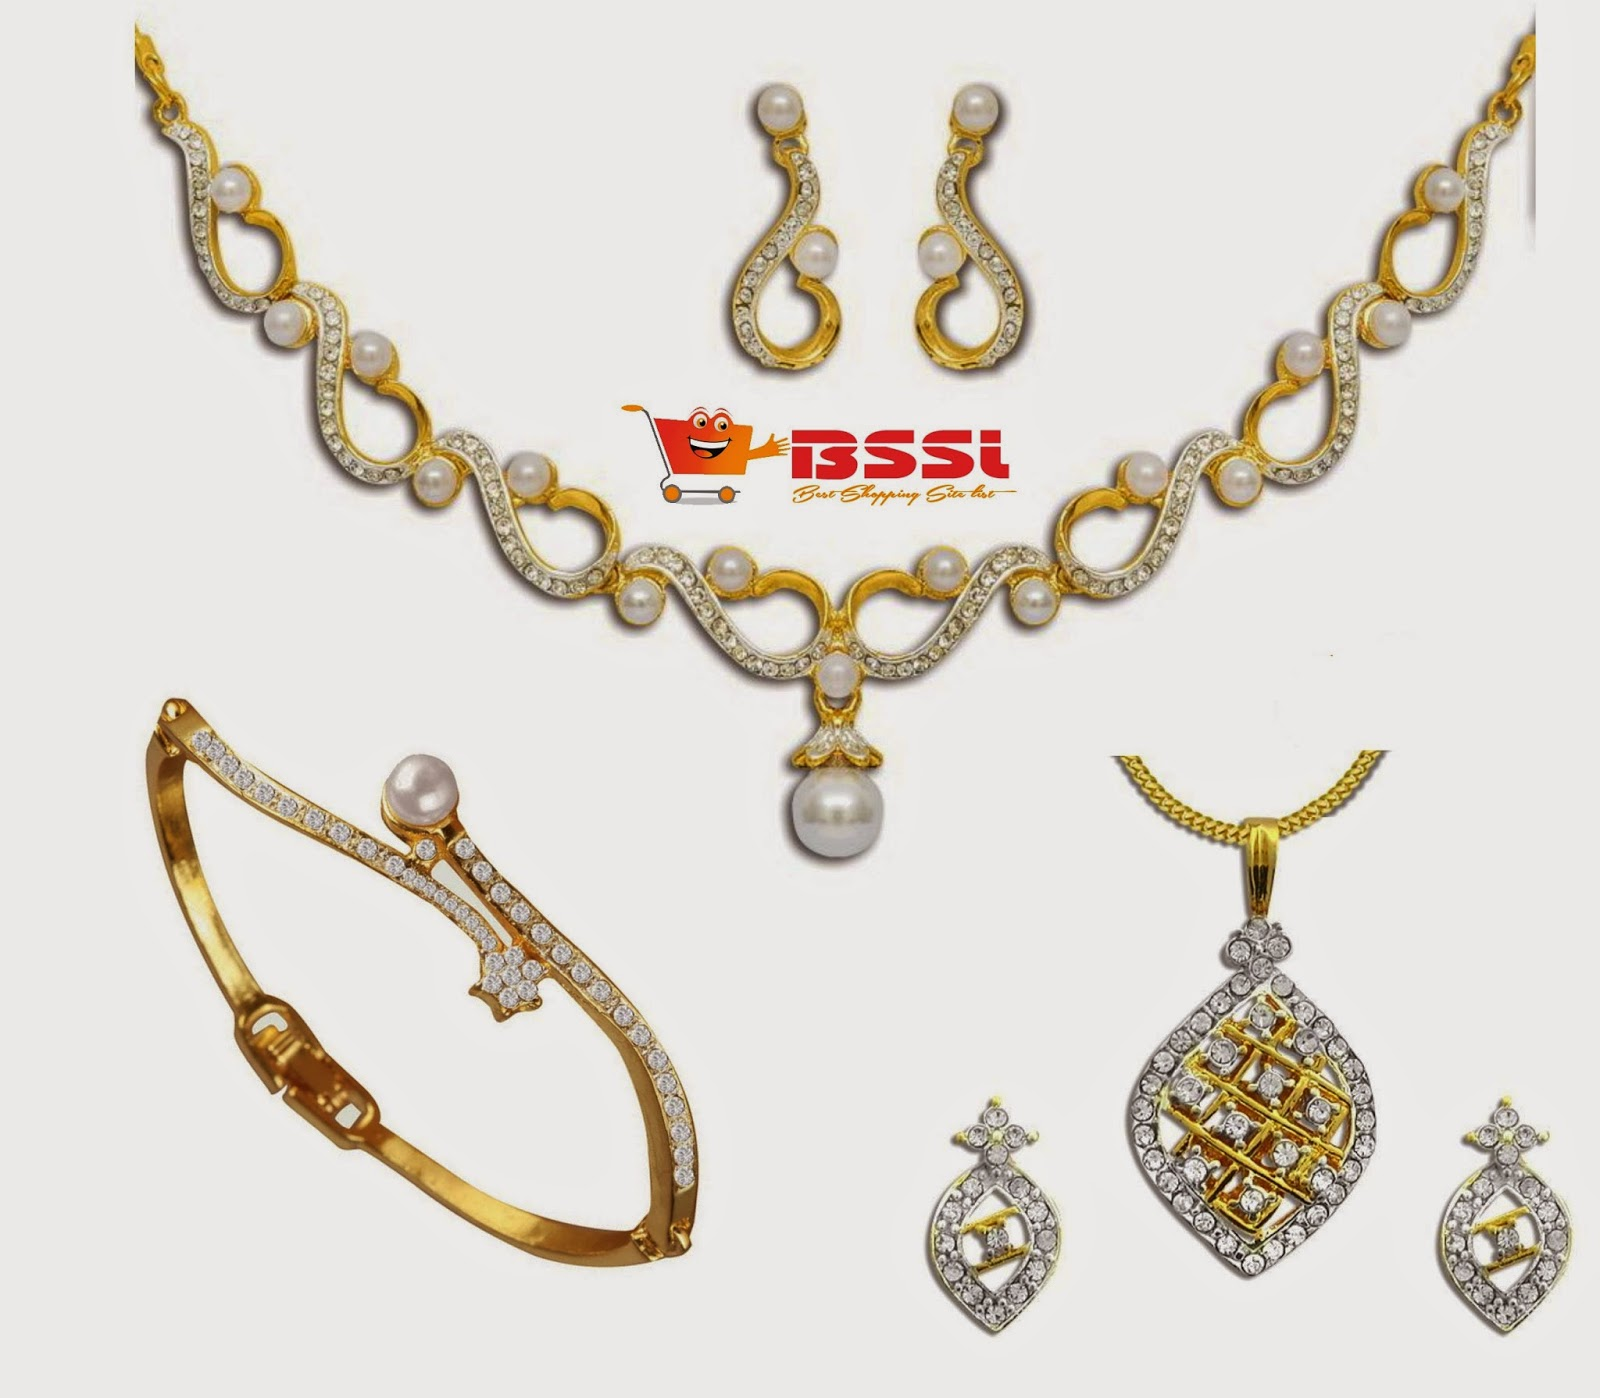 kundan golden designer necklace india tags shopping set matching online chain jewellery with buy pearl stone original earrings in